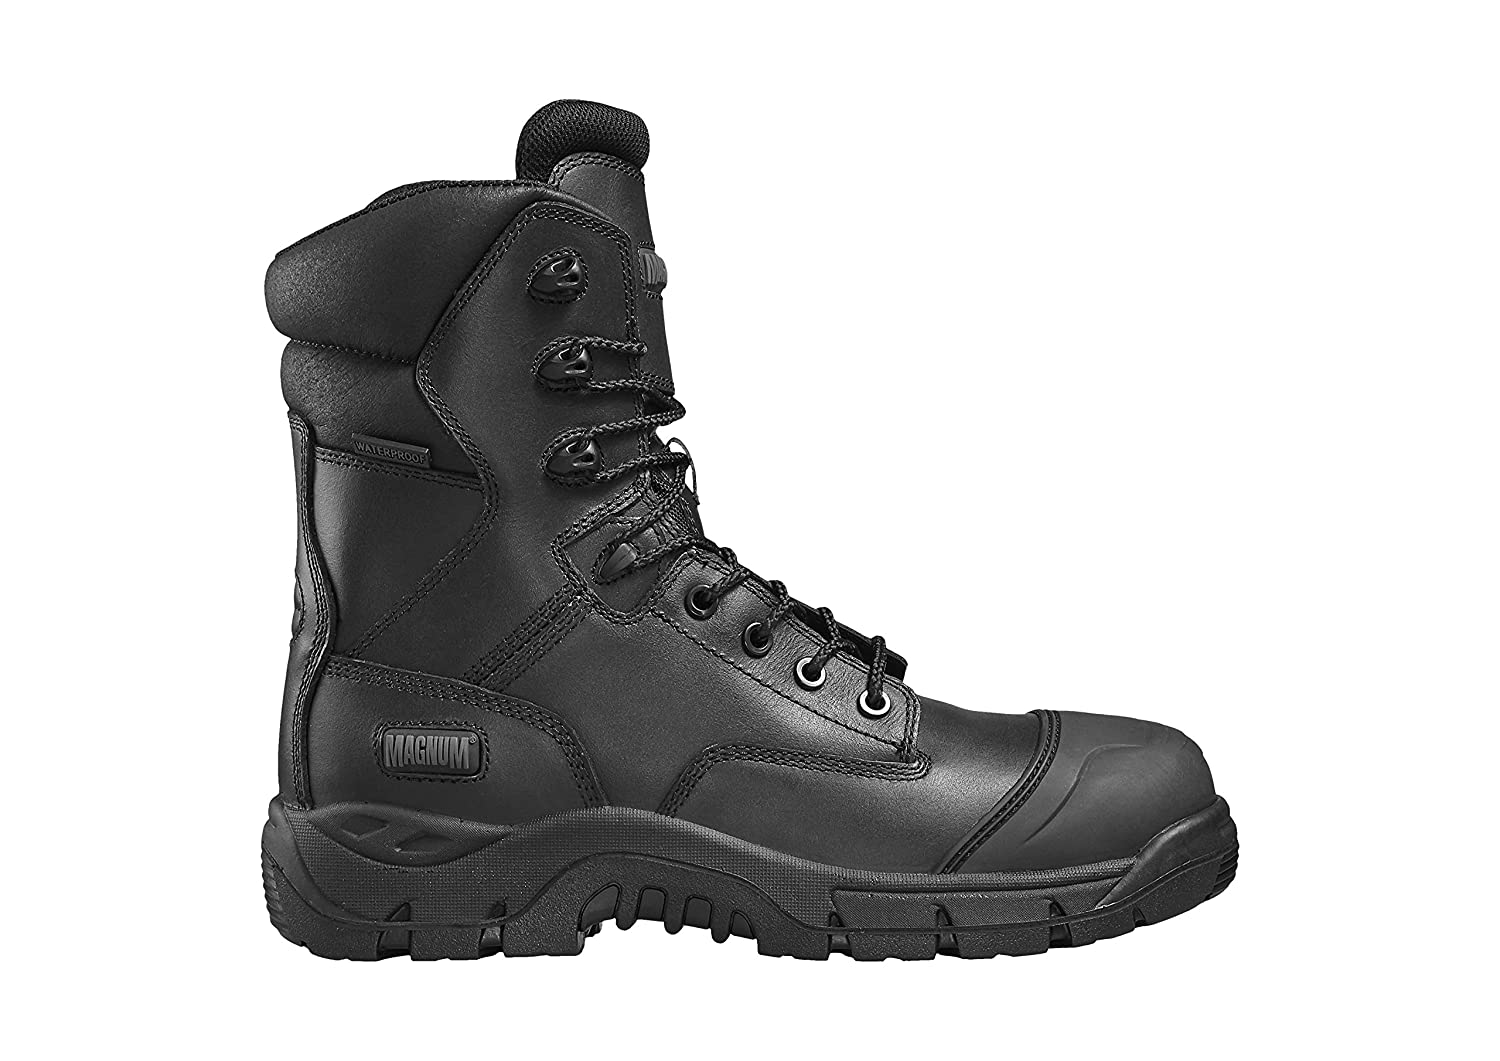 6132e62b7c2 Magnum Rigmaster Waterproof Composite Side Zip Combat Safety Boot (5 ...